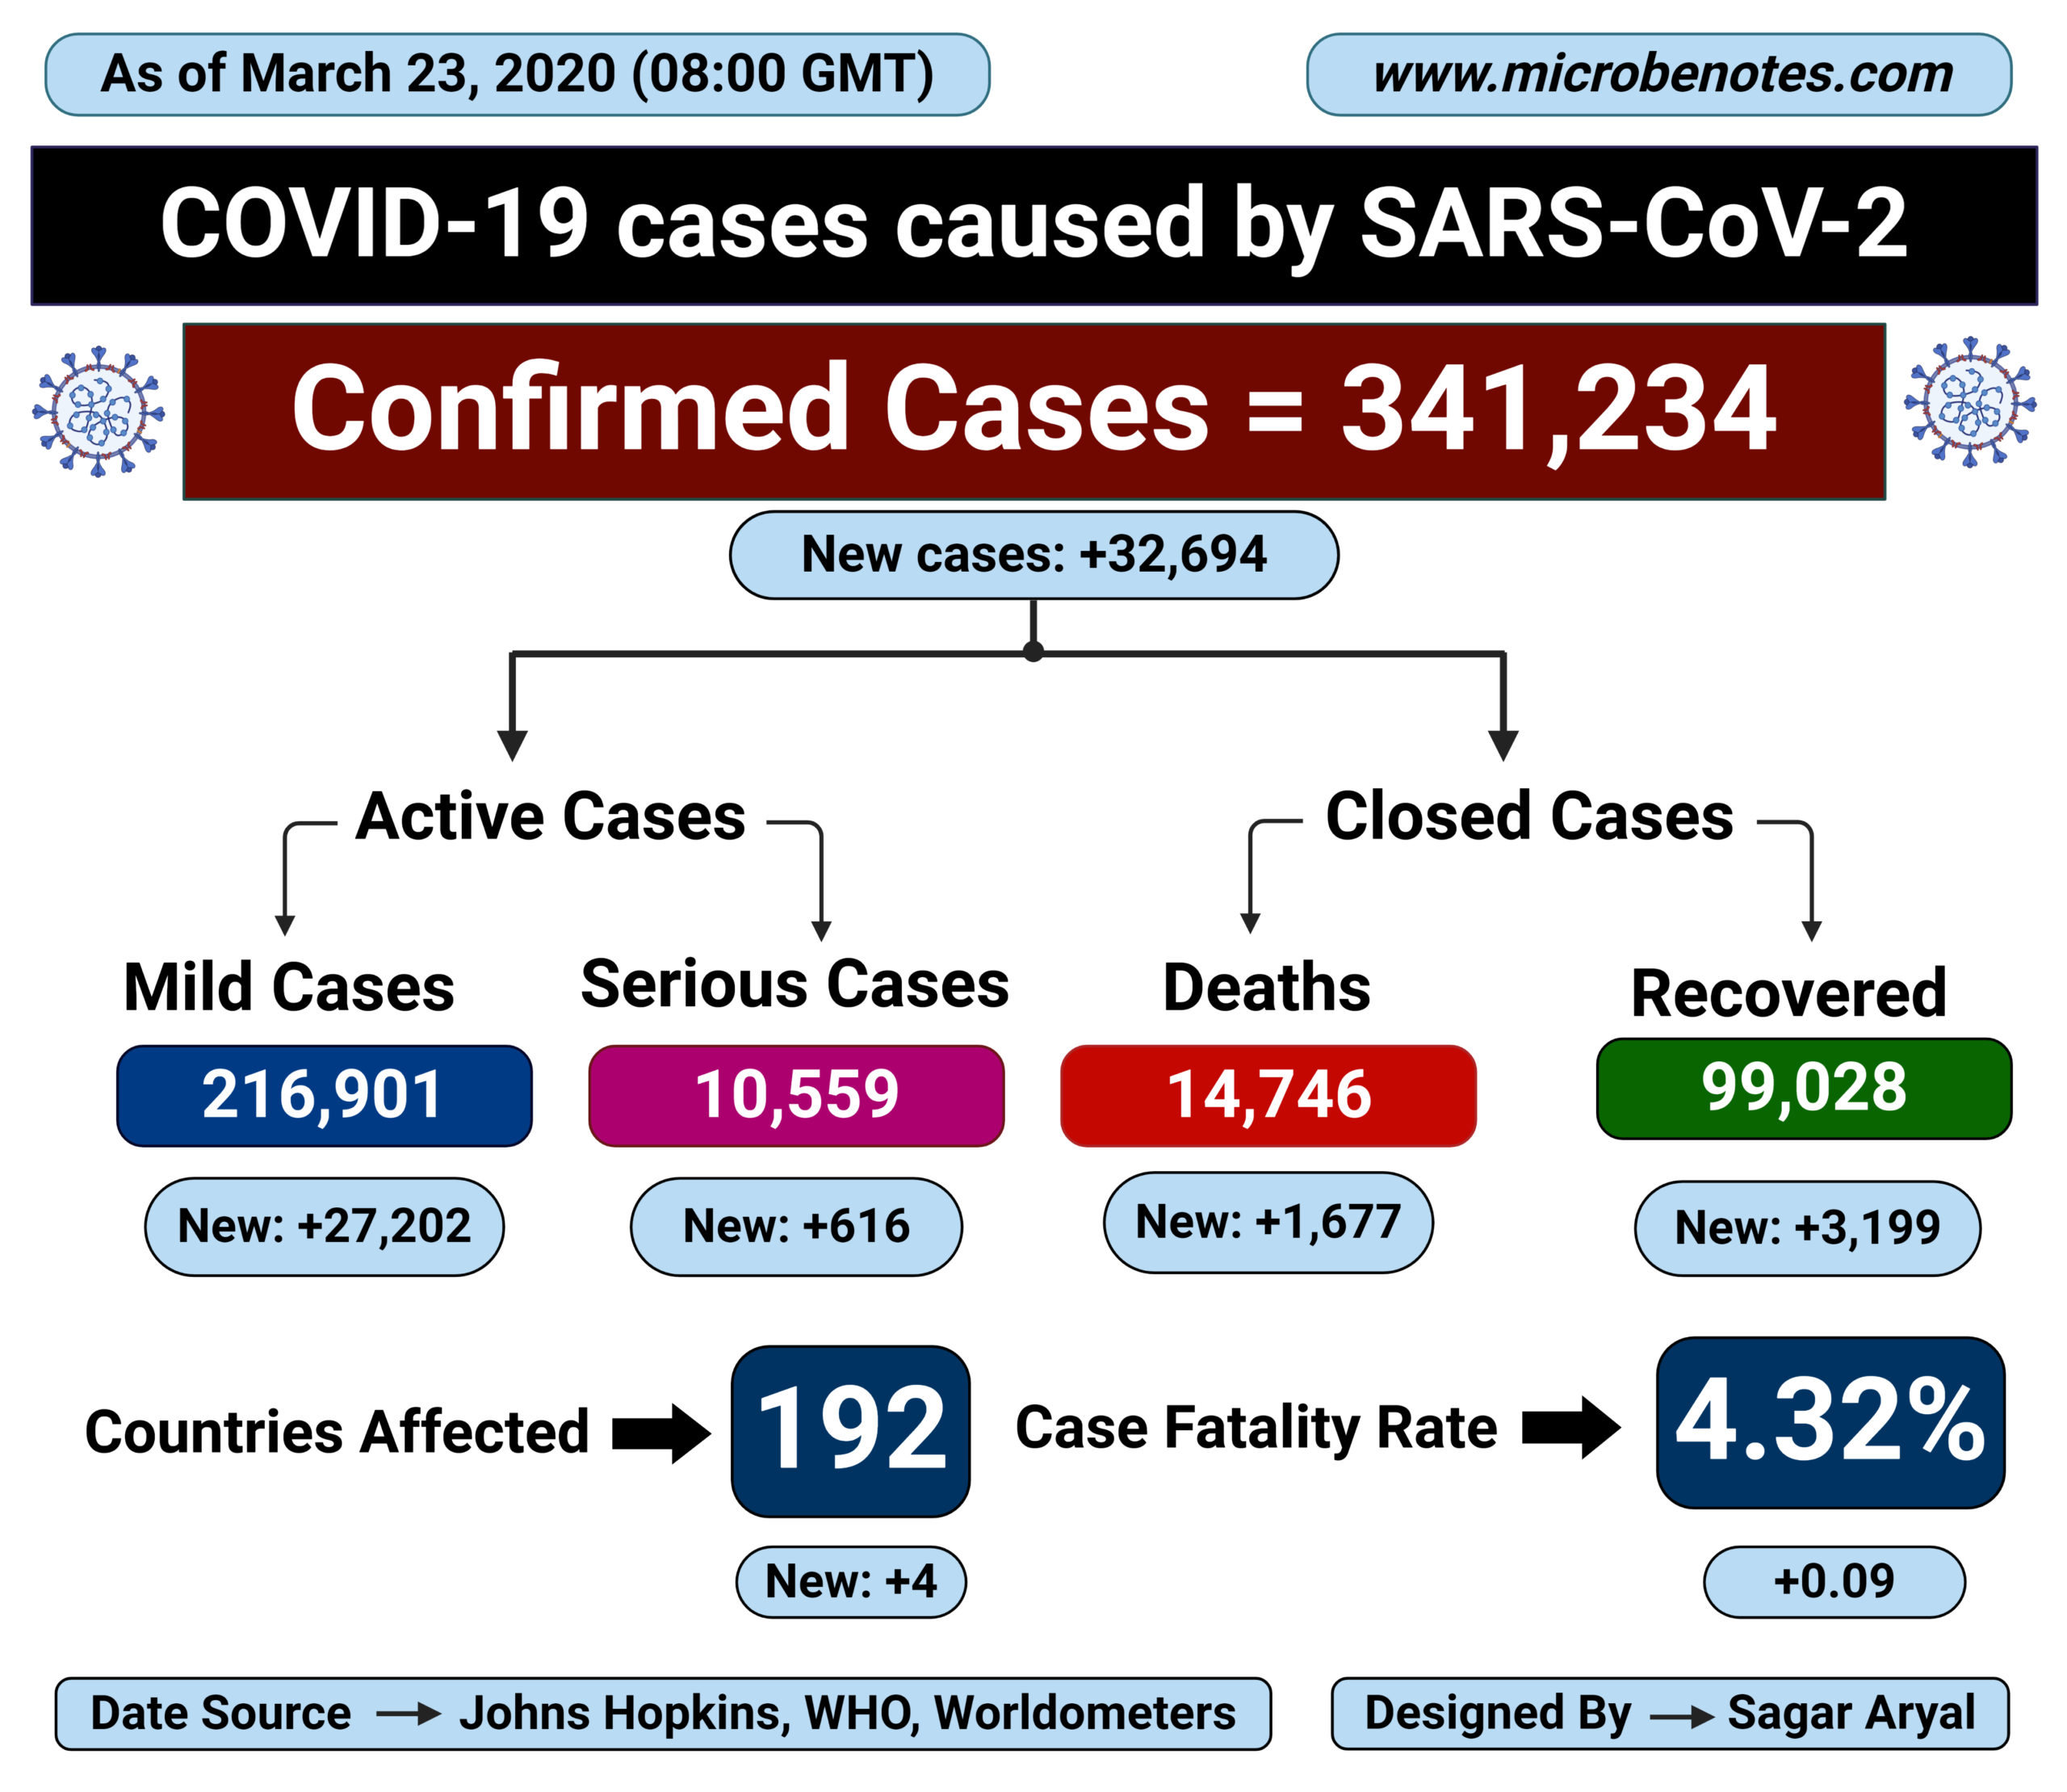 Epidemiology of COVID-19 caused by SARS-CoV-2 as of March 23, 2020